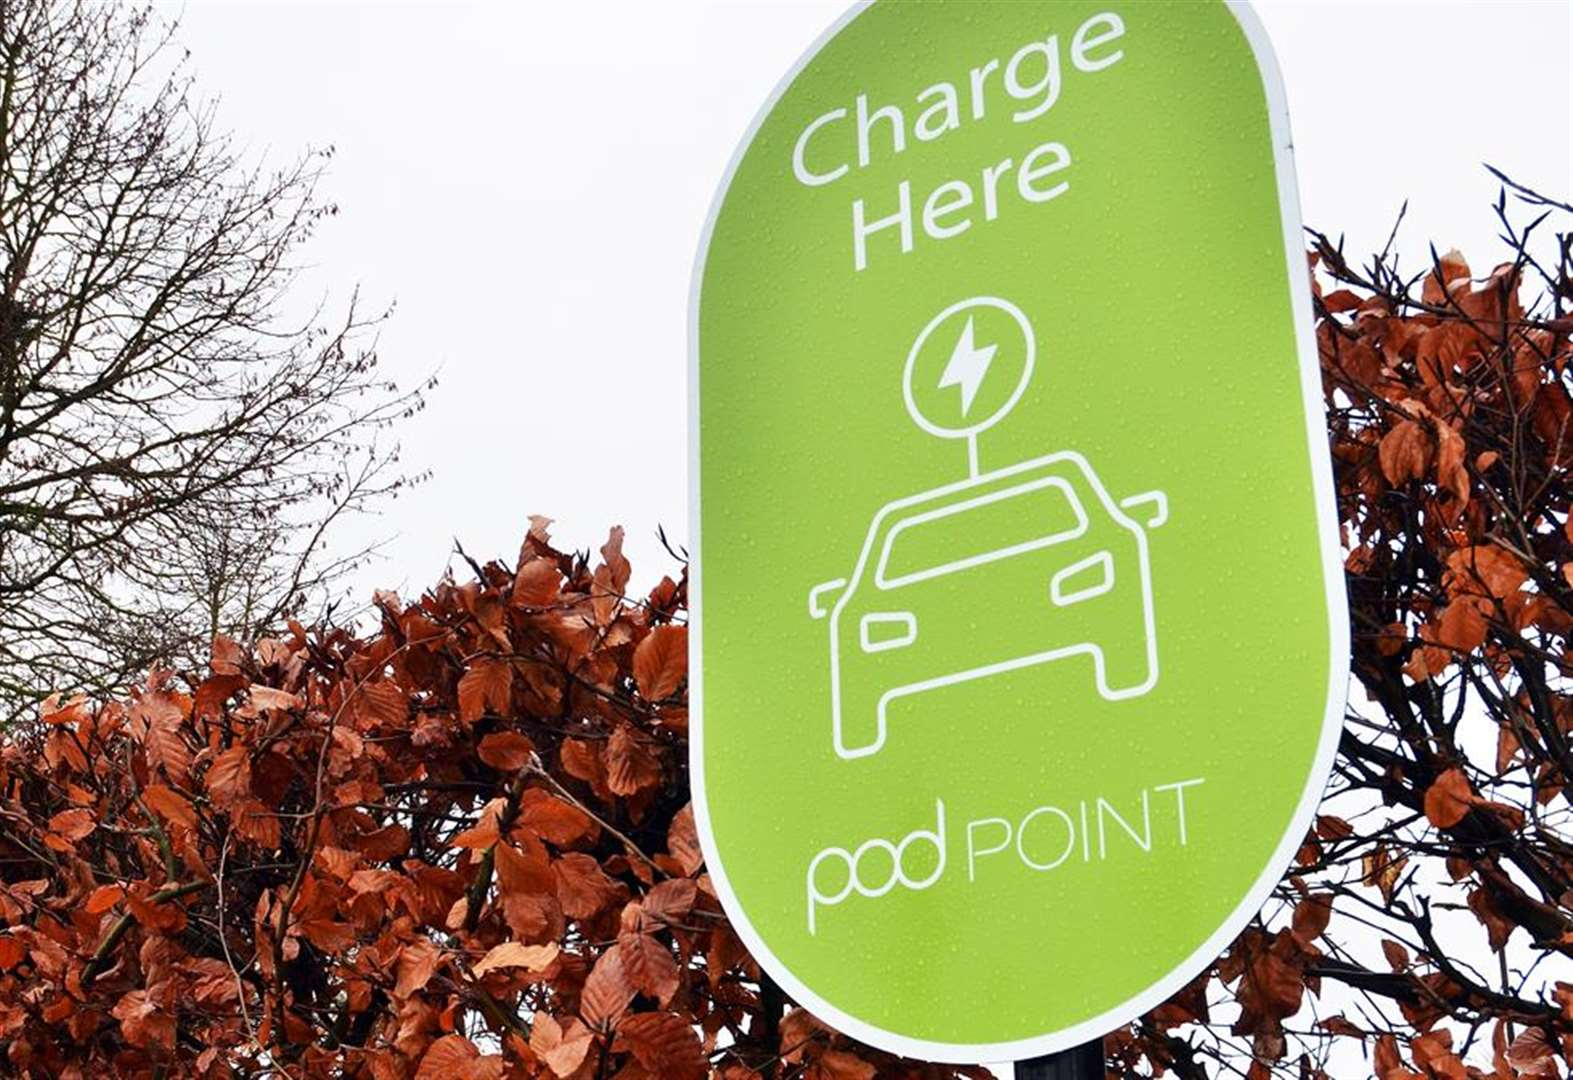 Could electric vehicle charging bays be coming to council car parks in Spalding, Holbeach, Long Sutton and Sutton Bridge?